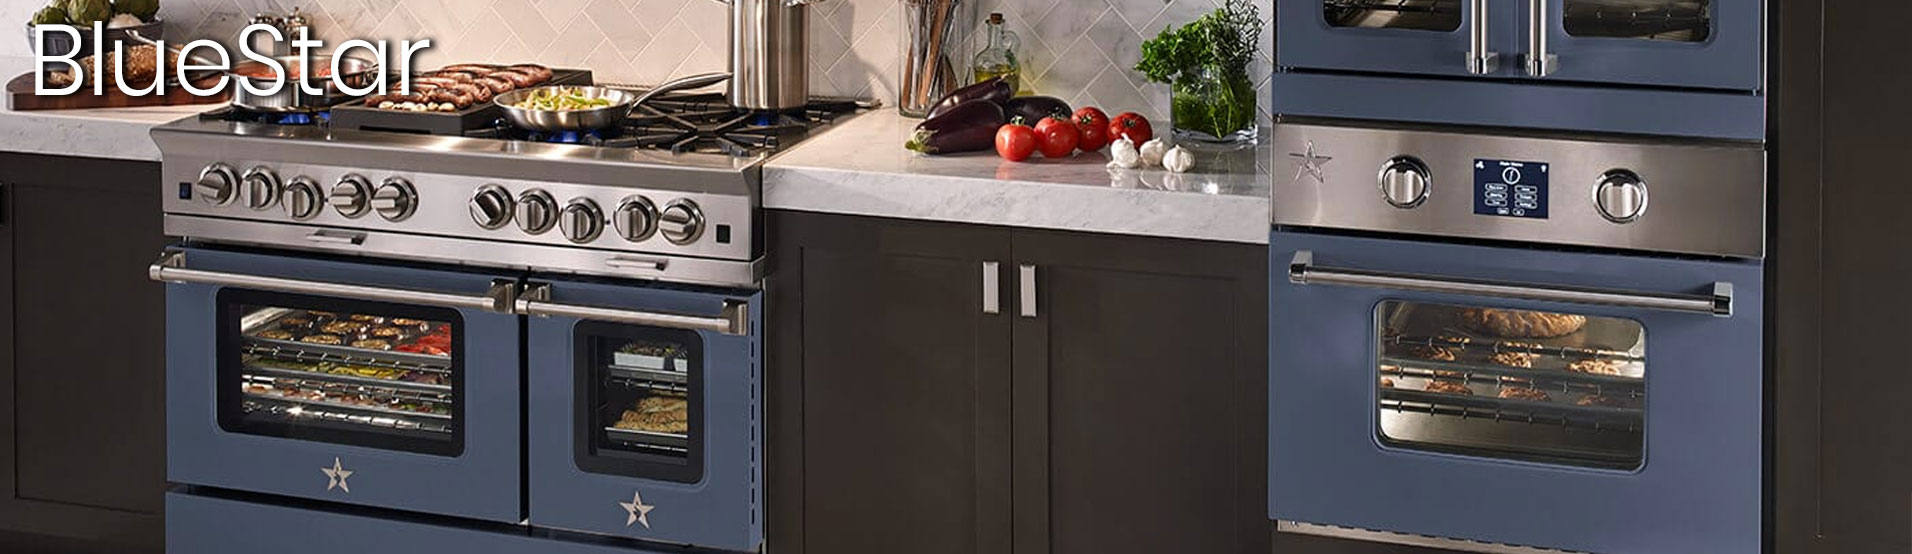 BlueStar Custom Color Appliances at Appliances Connection